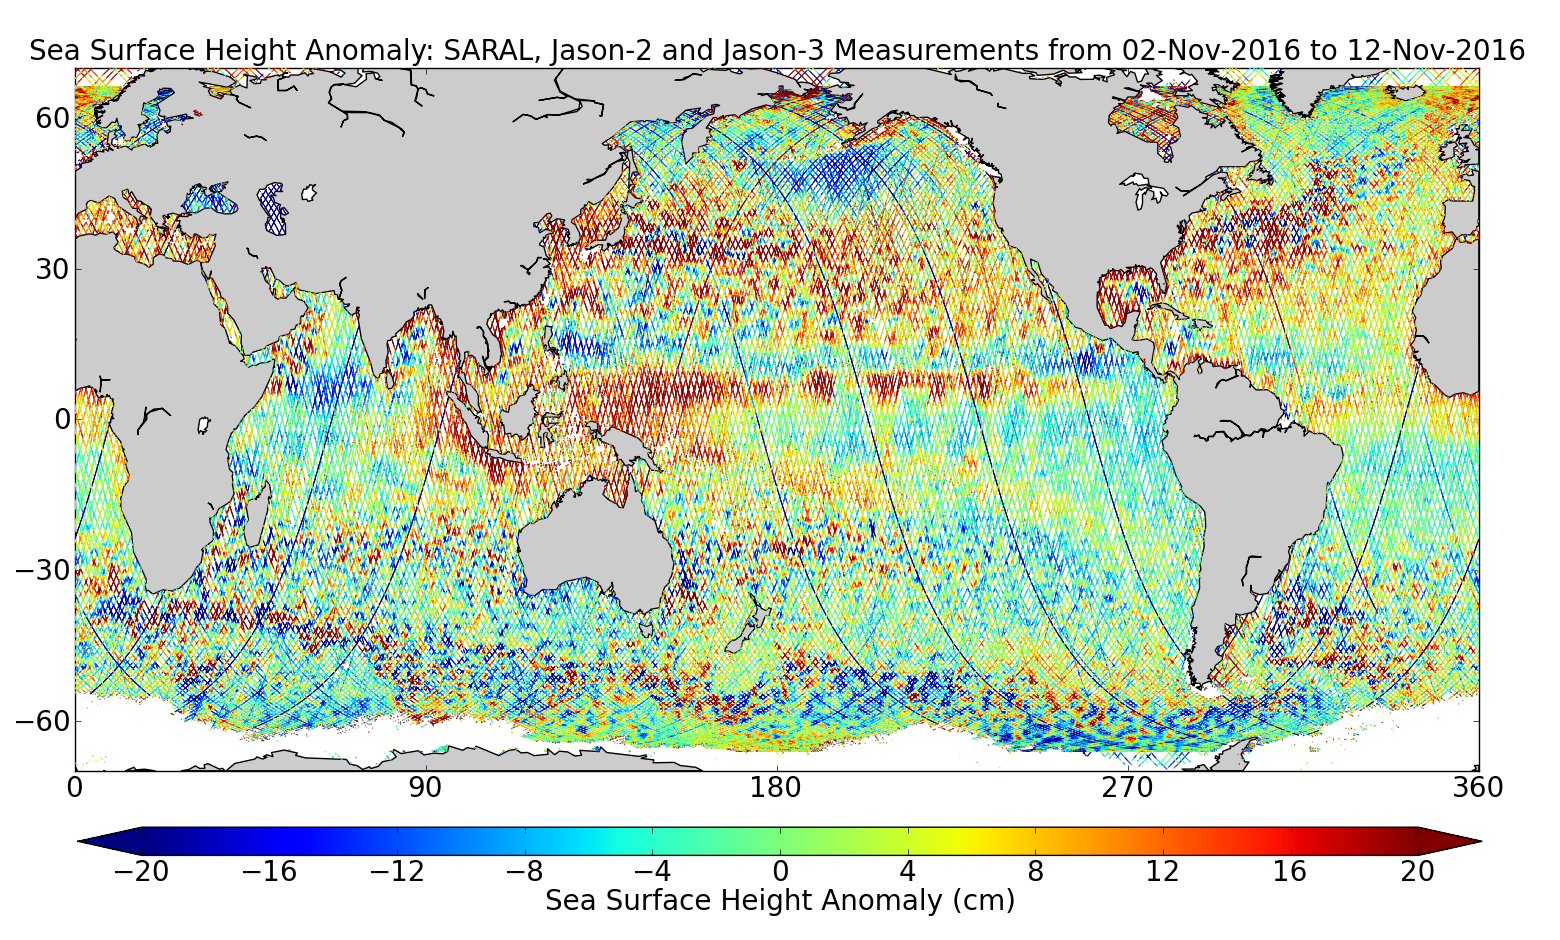 Sea Surface Height Anomaly: SARAL, Jason-2 and Jason-3 Measurements from 02-Nov-2016 to 12-Nov-2016